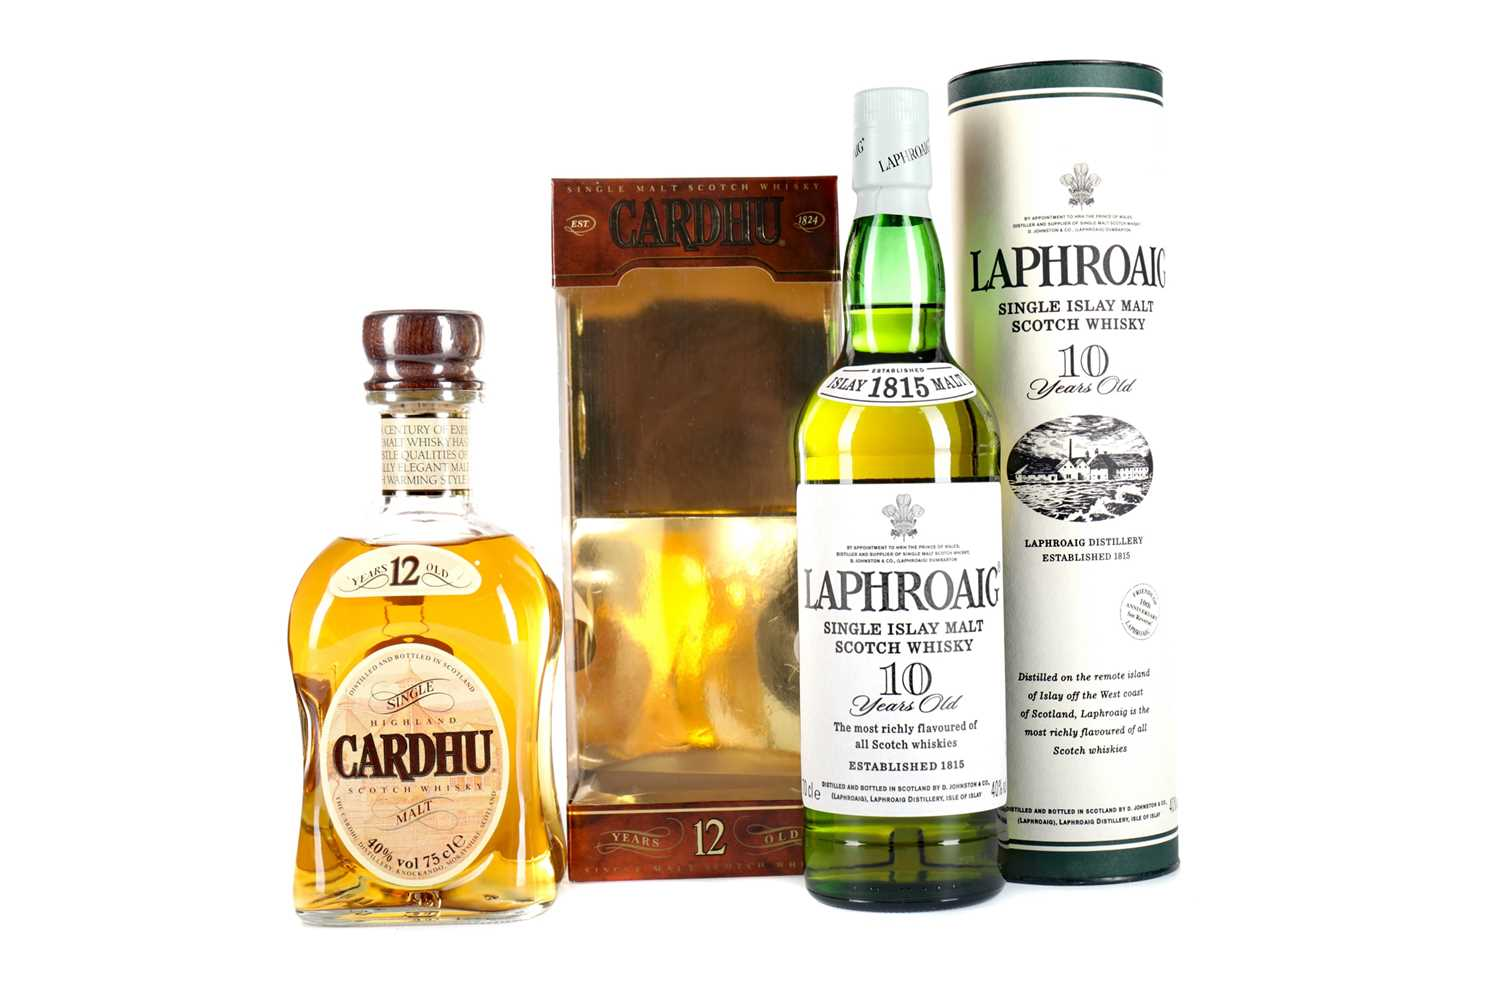 Lot 60 - LAPHROAIG 10 YEARS OLD AND CARDHU 12 YEARS OLD